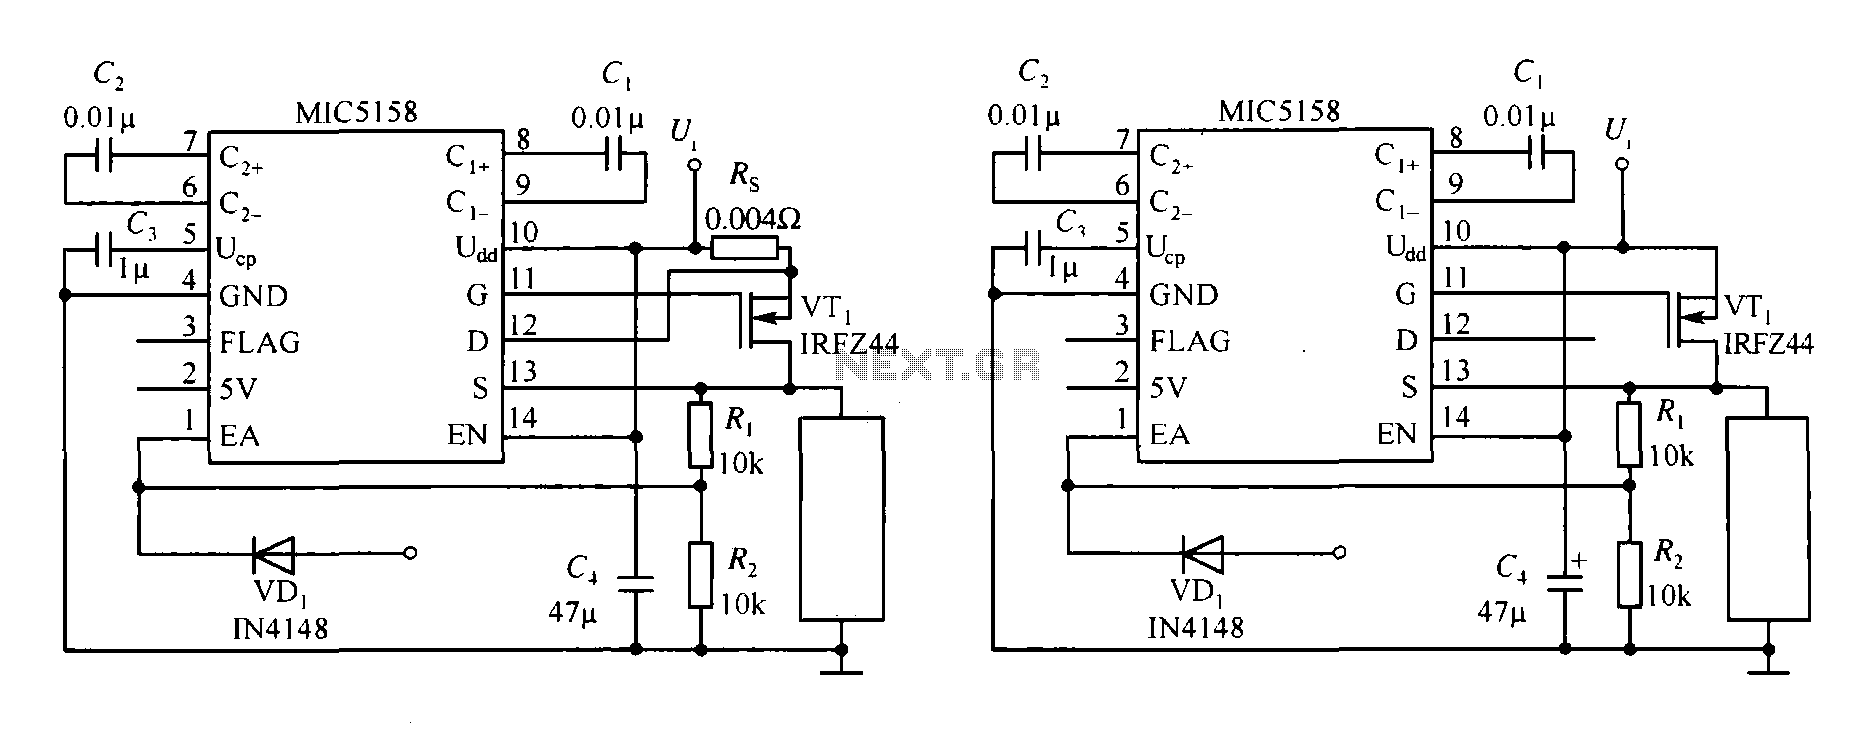 Switching Circuit Page 3 Other Circuits Photocell Wiring Diagram Lighting Light Sensor Switch A Of High Speed Constituted Triggered Rising Mic5158